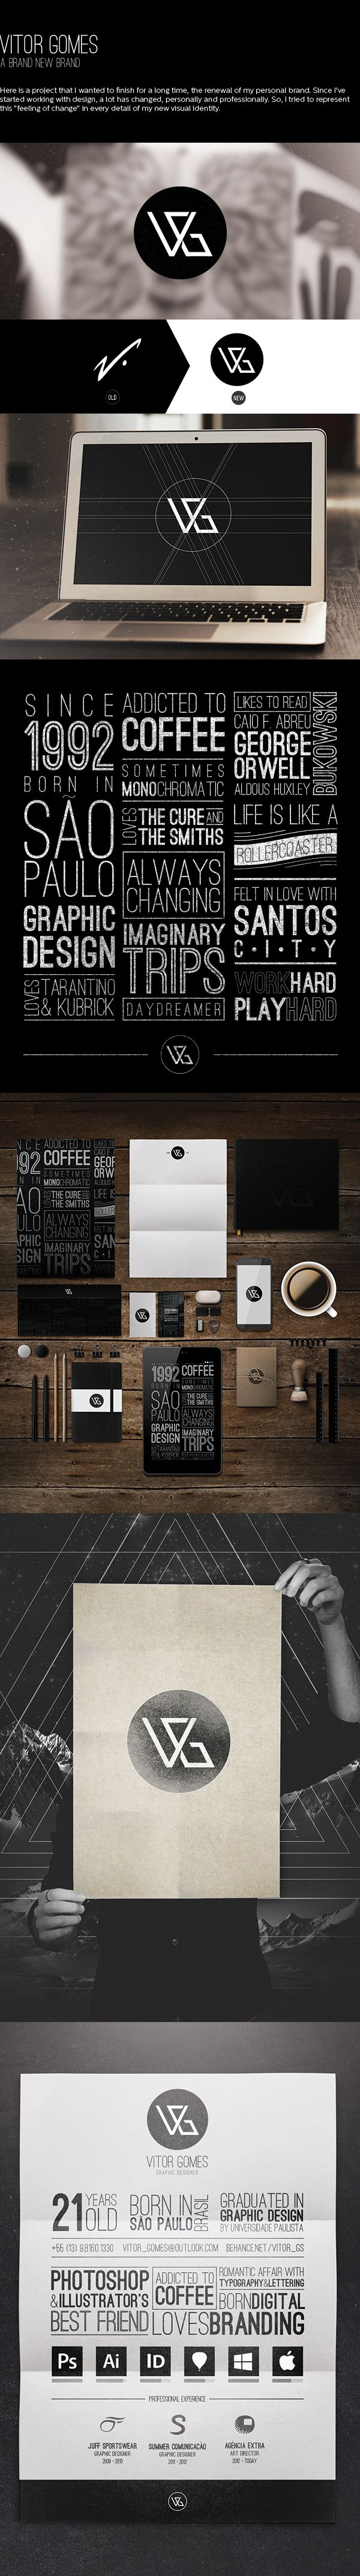 Vitor Gomes - A brand new brand by Vitor Gomes, via Behance